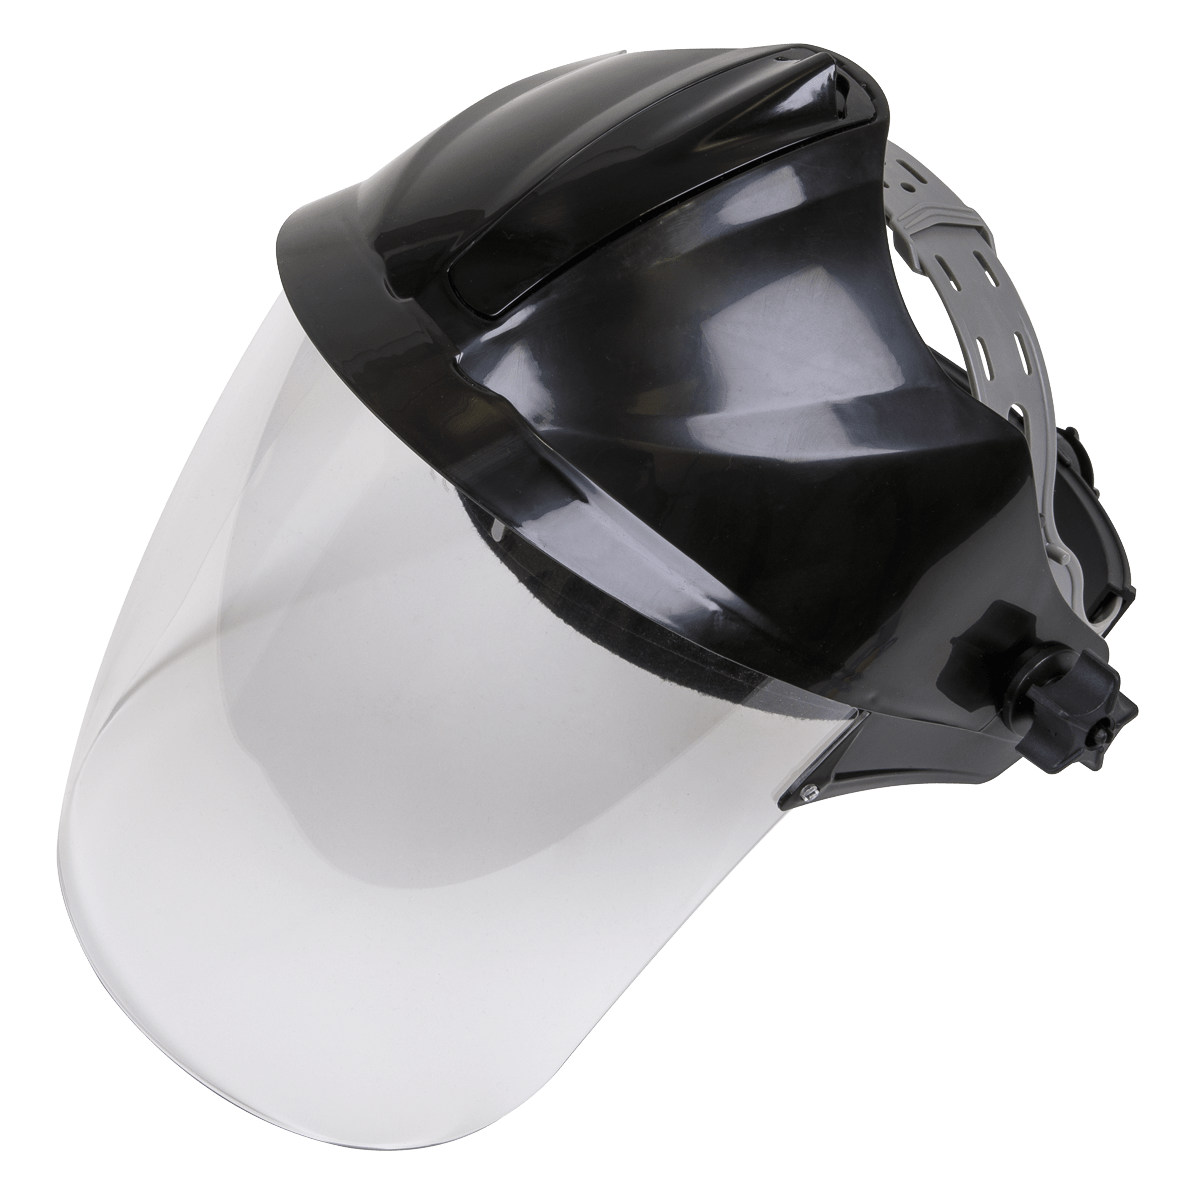 Sealey Deluxe Brow Guard with Aspherical Polycarbonate Full Face Shield SSP78   Ratchet adjustable headband with front and back padding for extra comfort.   toolforce.ie